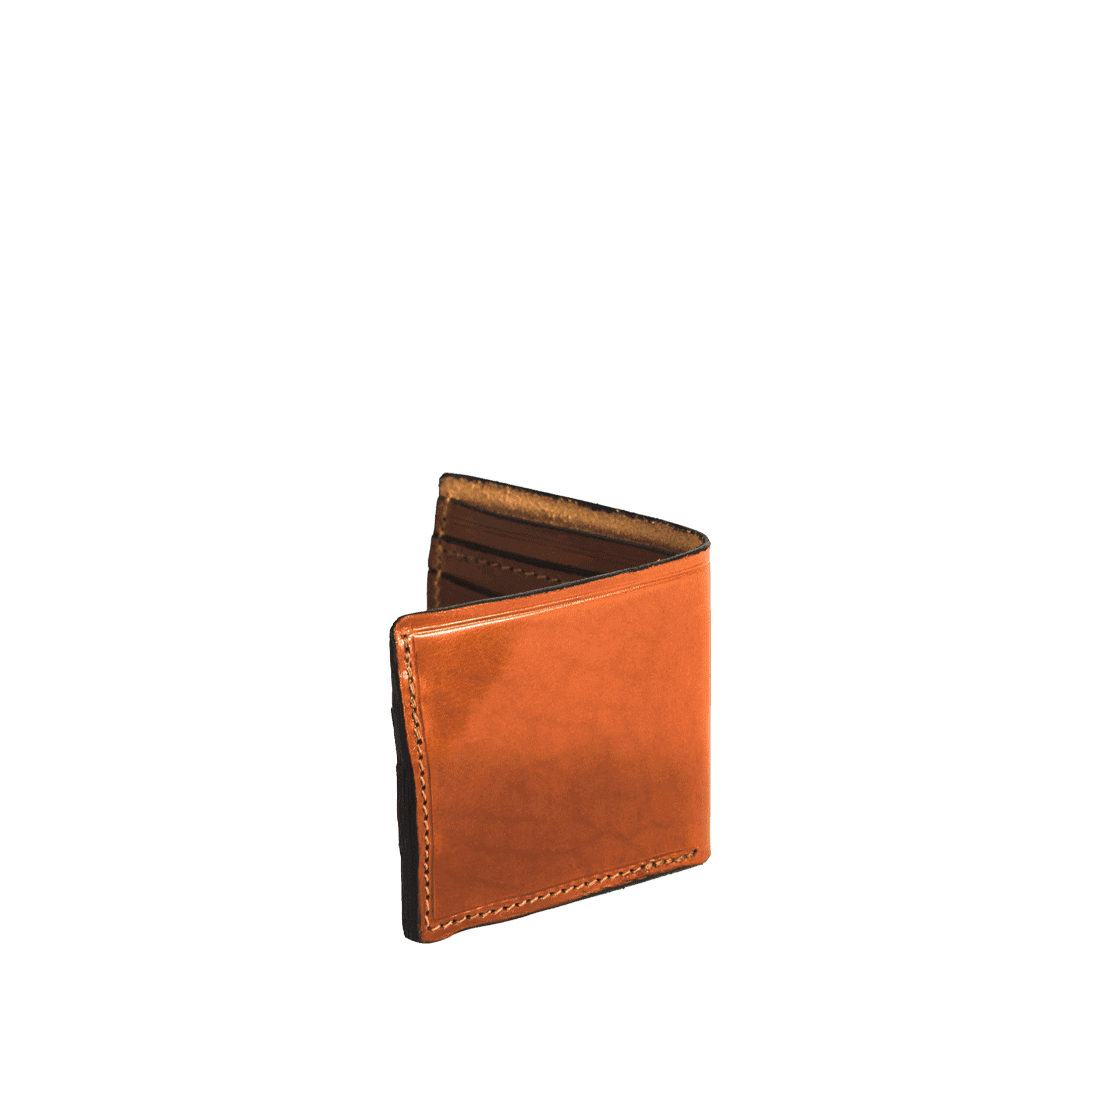 The Wallet shiny tan